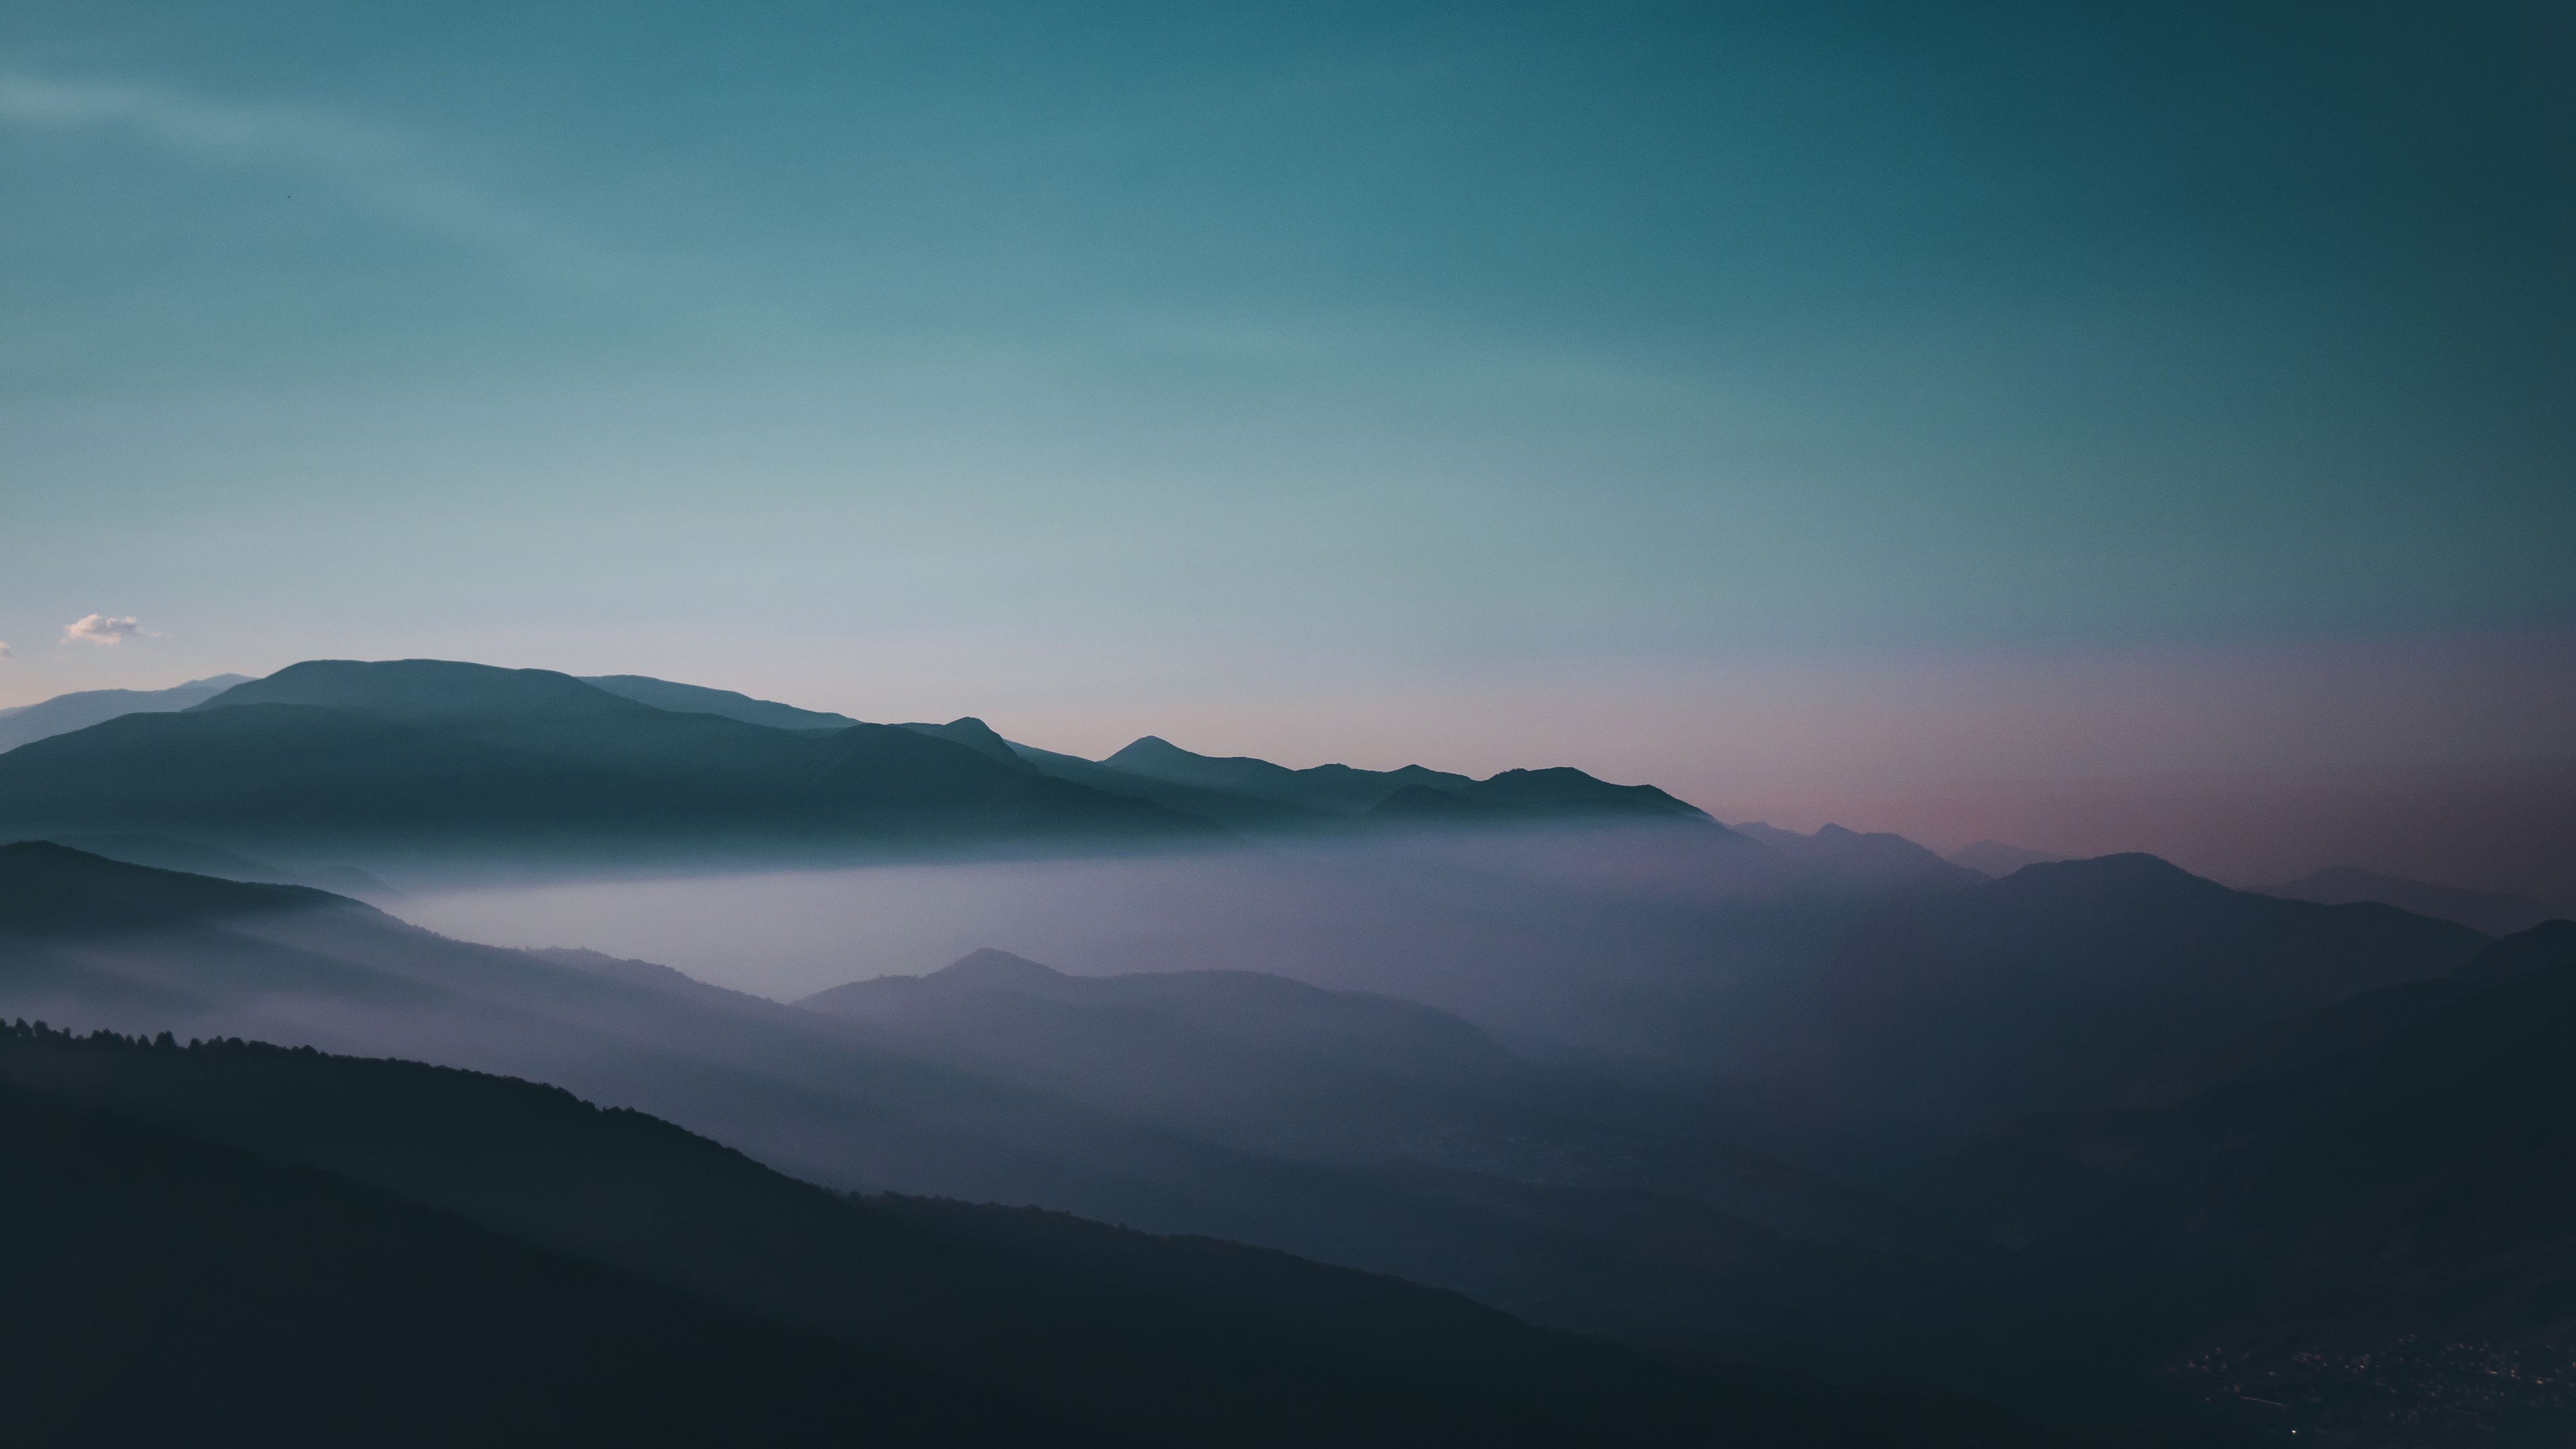 early morning fog sky mountains 4k 1551643434 - Early Morning Fog Sky Mountains 4k - sky wallpapers, nature wallpapers, mountains wallpapers, hd-wallpapers, fog wallpapers, 4k-wallpapers